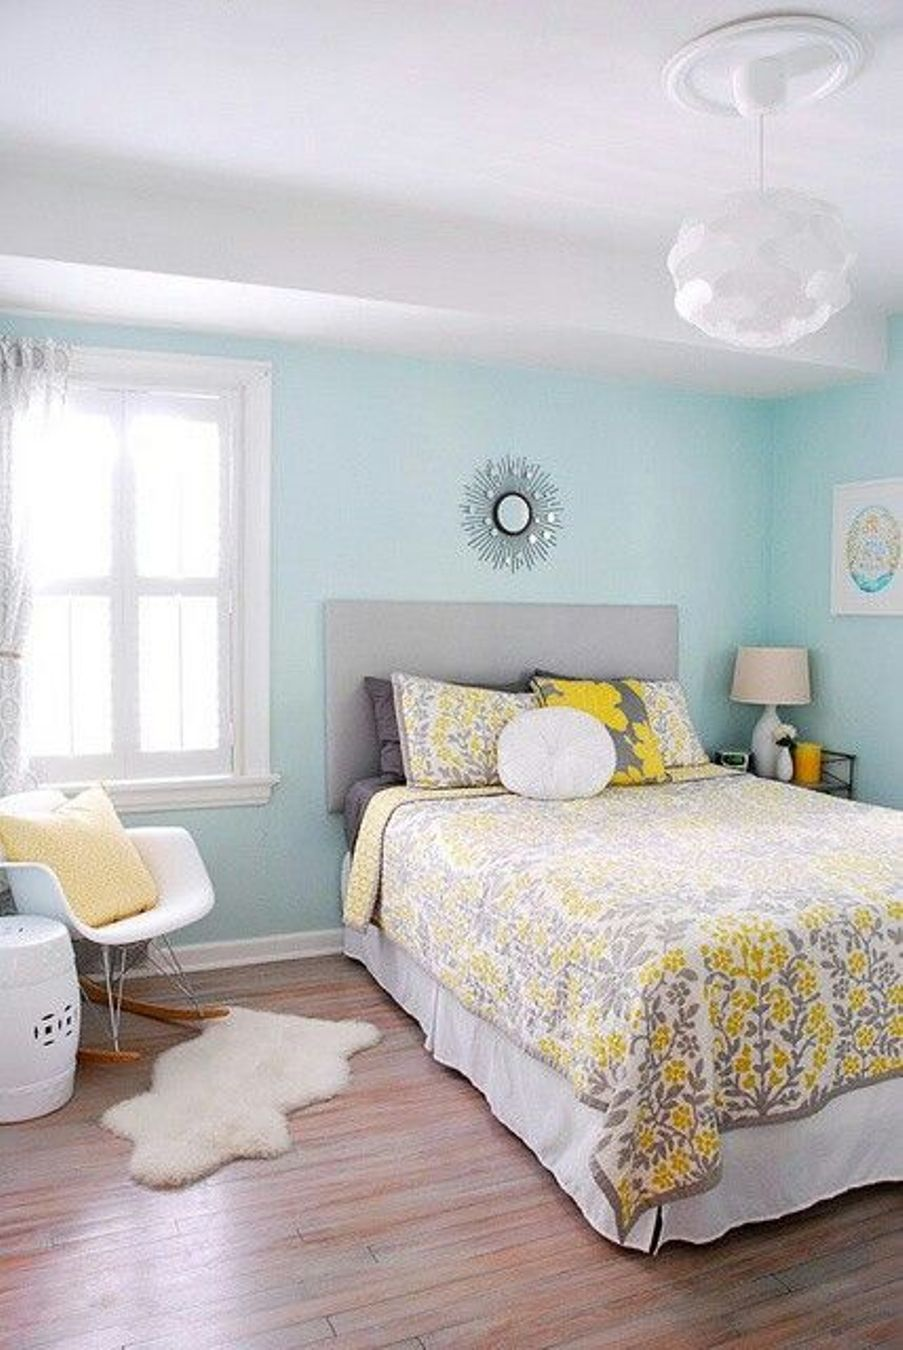 Best Paint Colors For Small Room Some Tips Small Bedroom